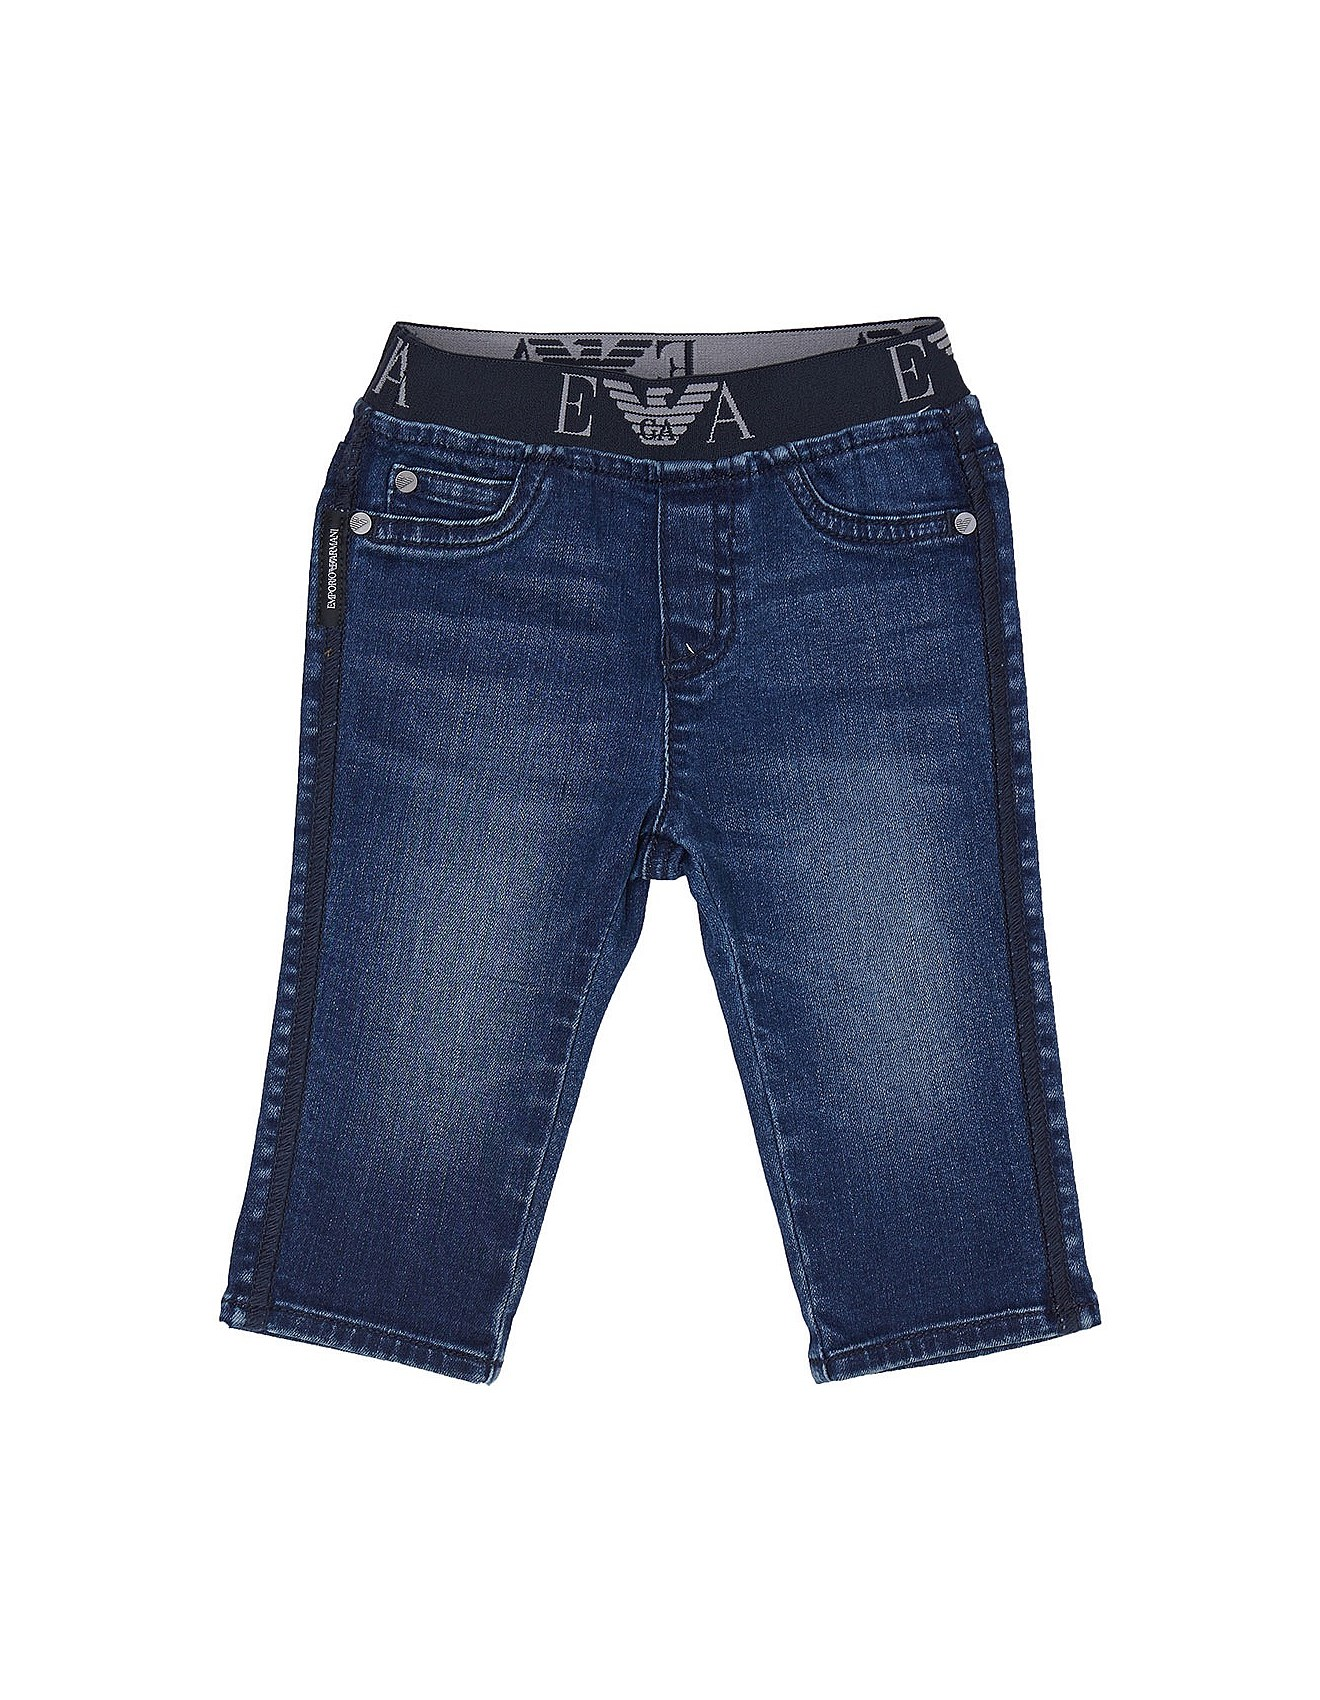 4f69cc181 5 Pocket Pant (12-36 Months). 1. Zoom. Emporio Armani